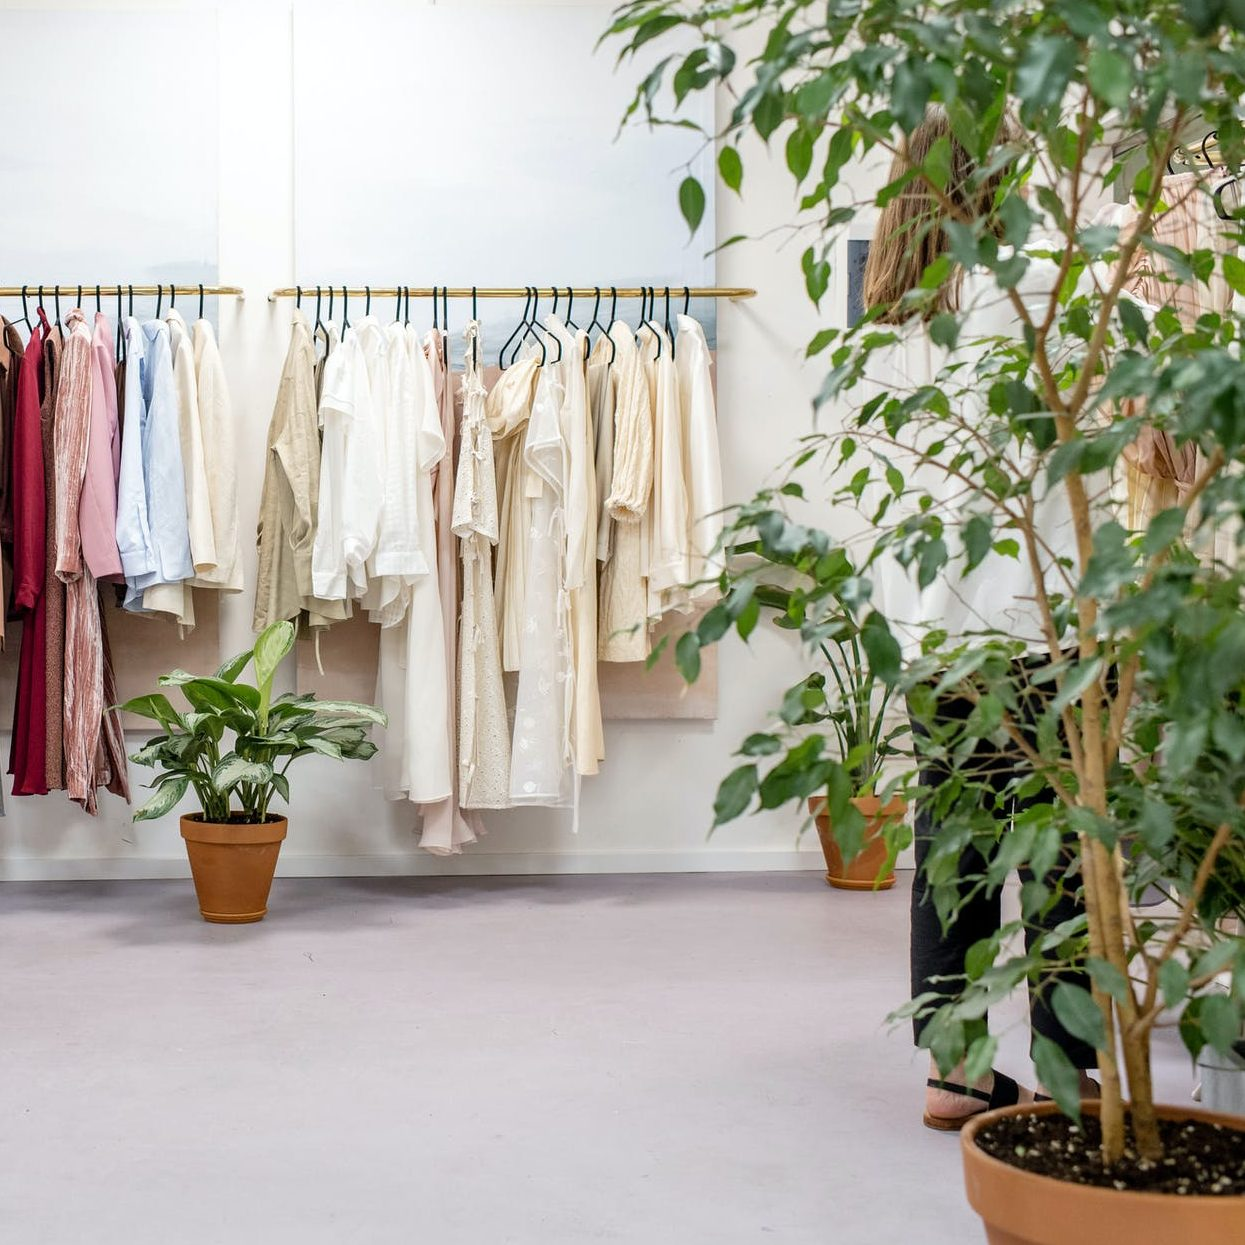 clothes hanged on clothes rack